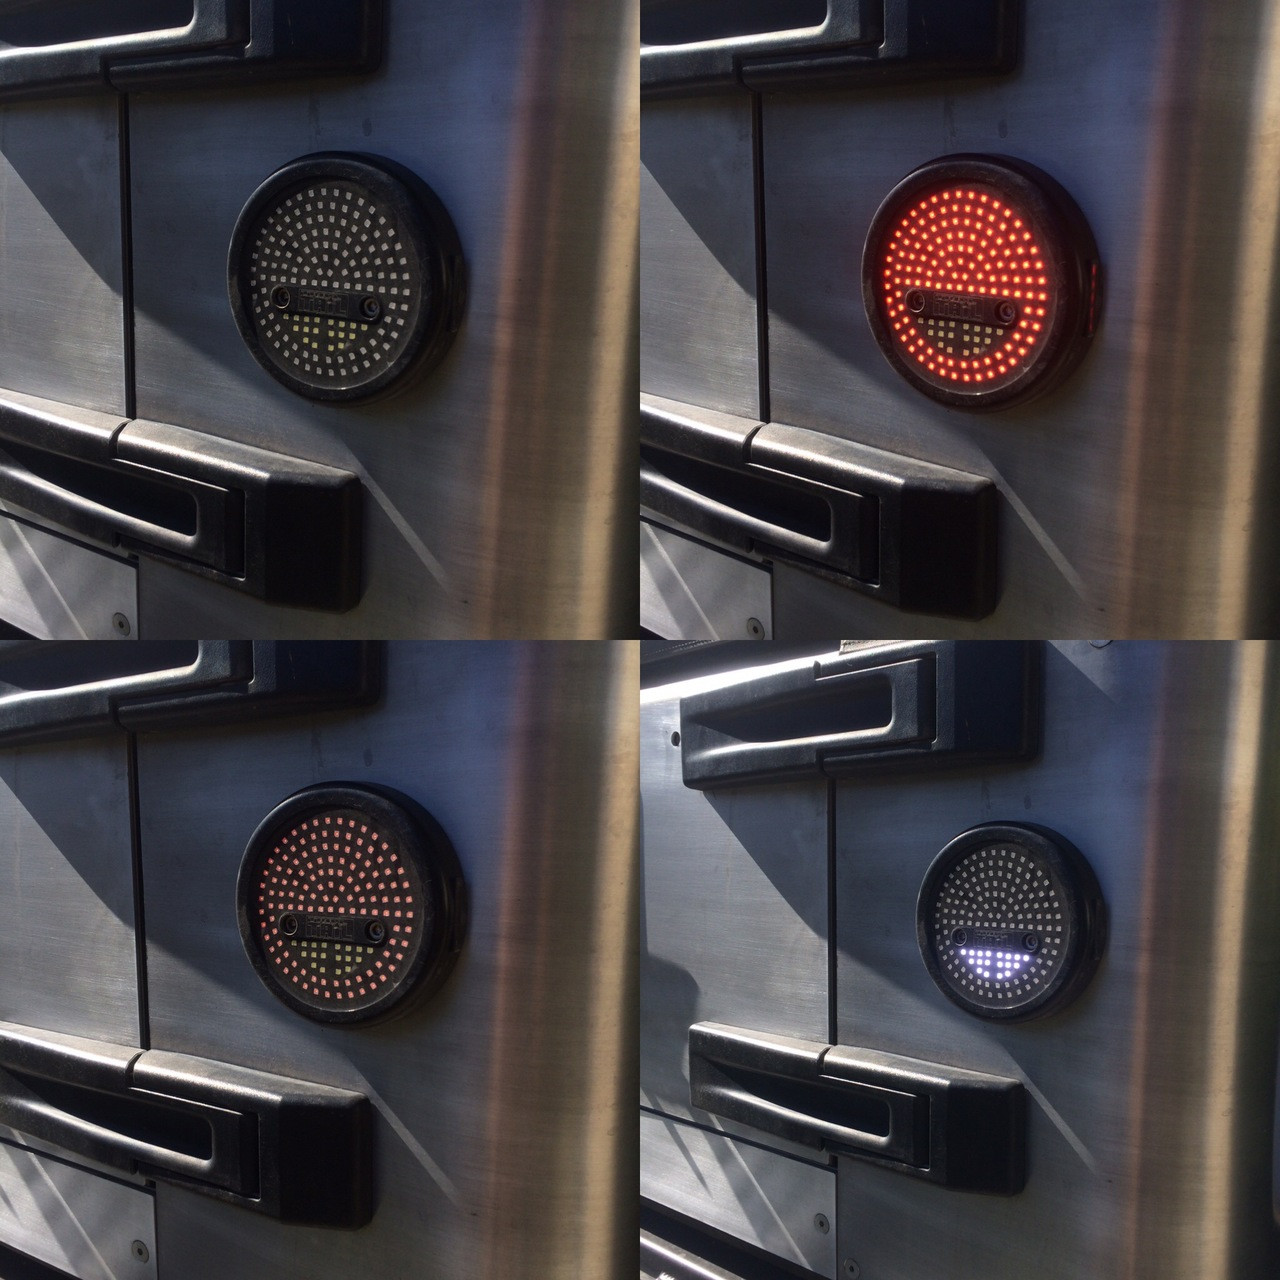 4 stages on the LED tail lights (off, stop, running and reverse)